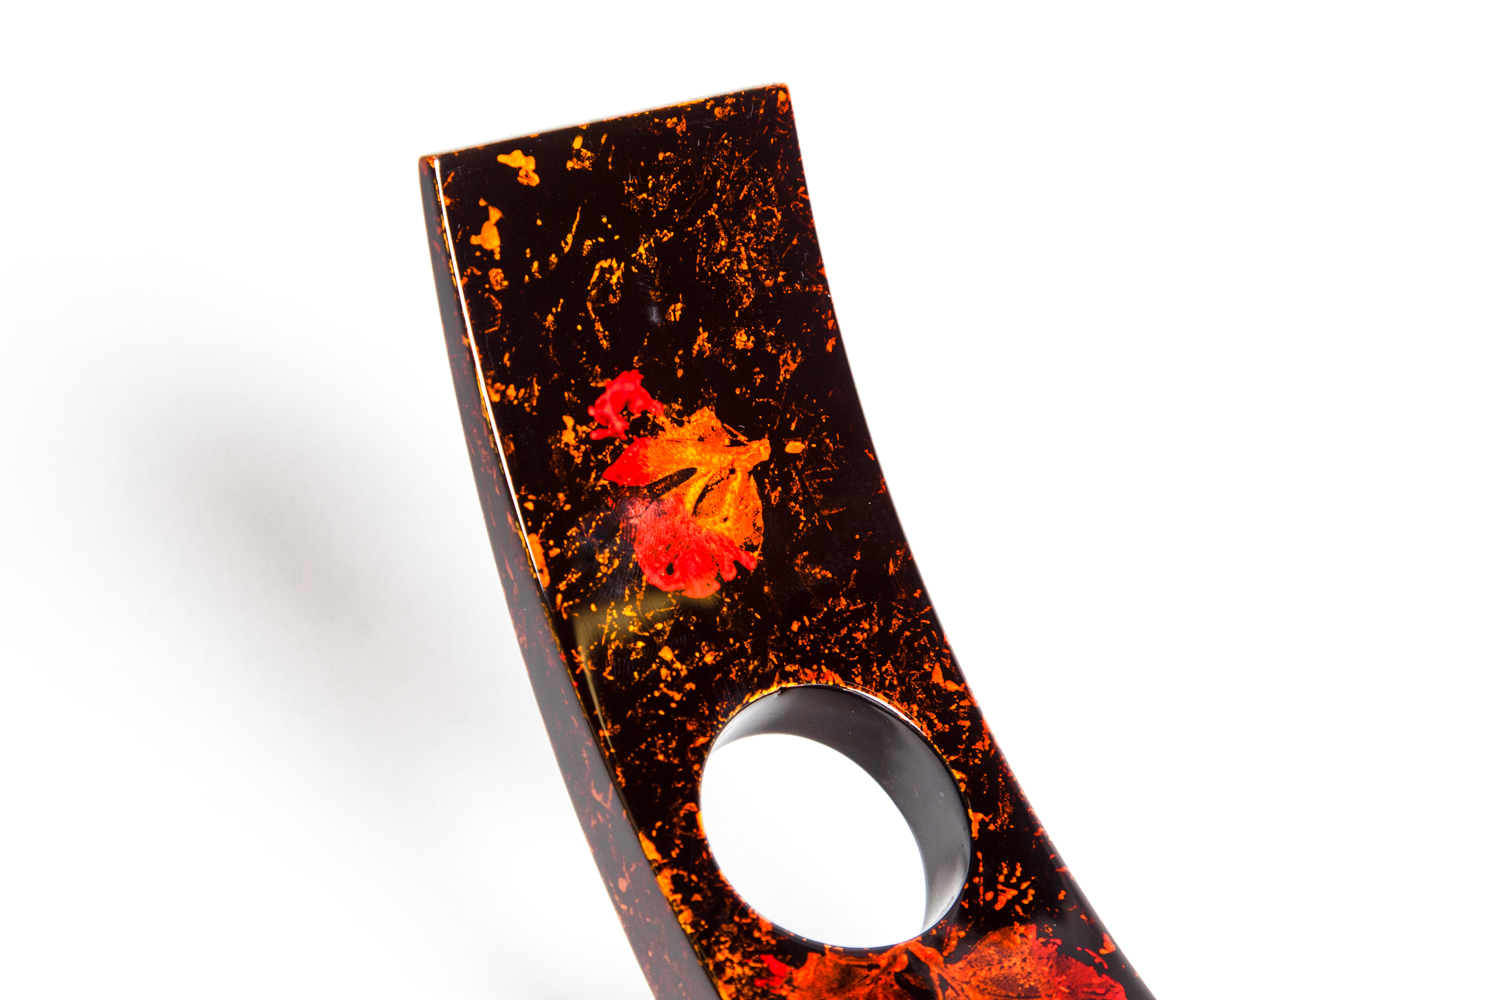 Pressed flower wooden lacquer wine holder